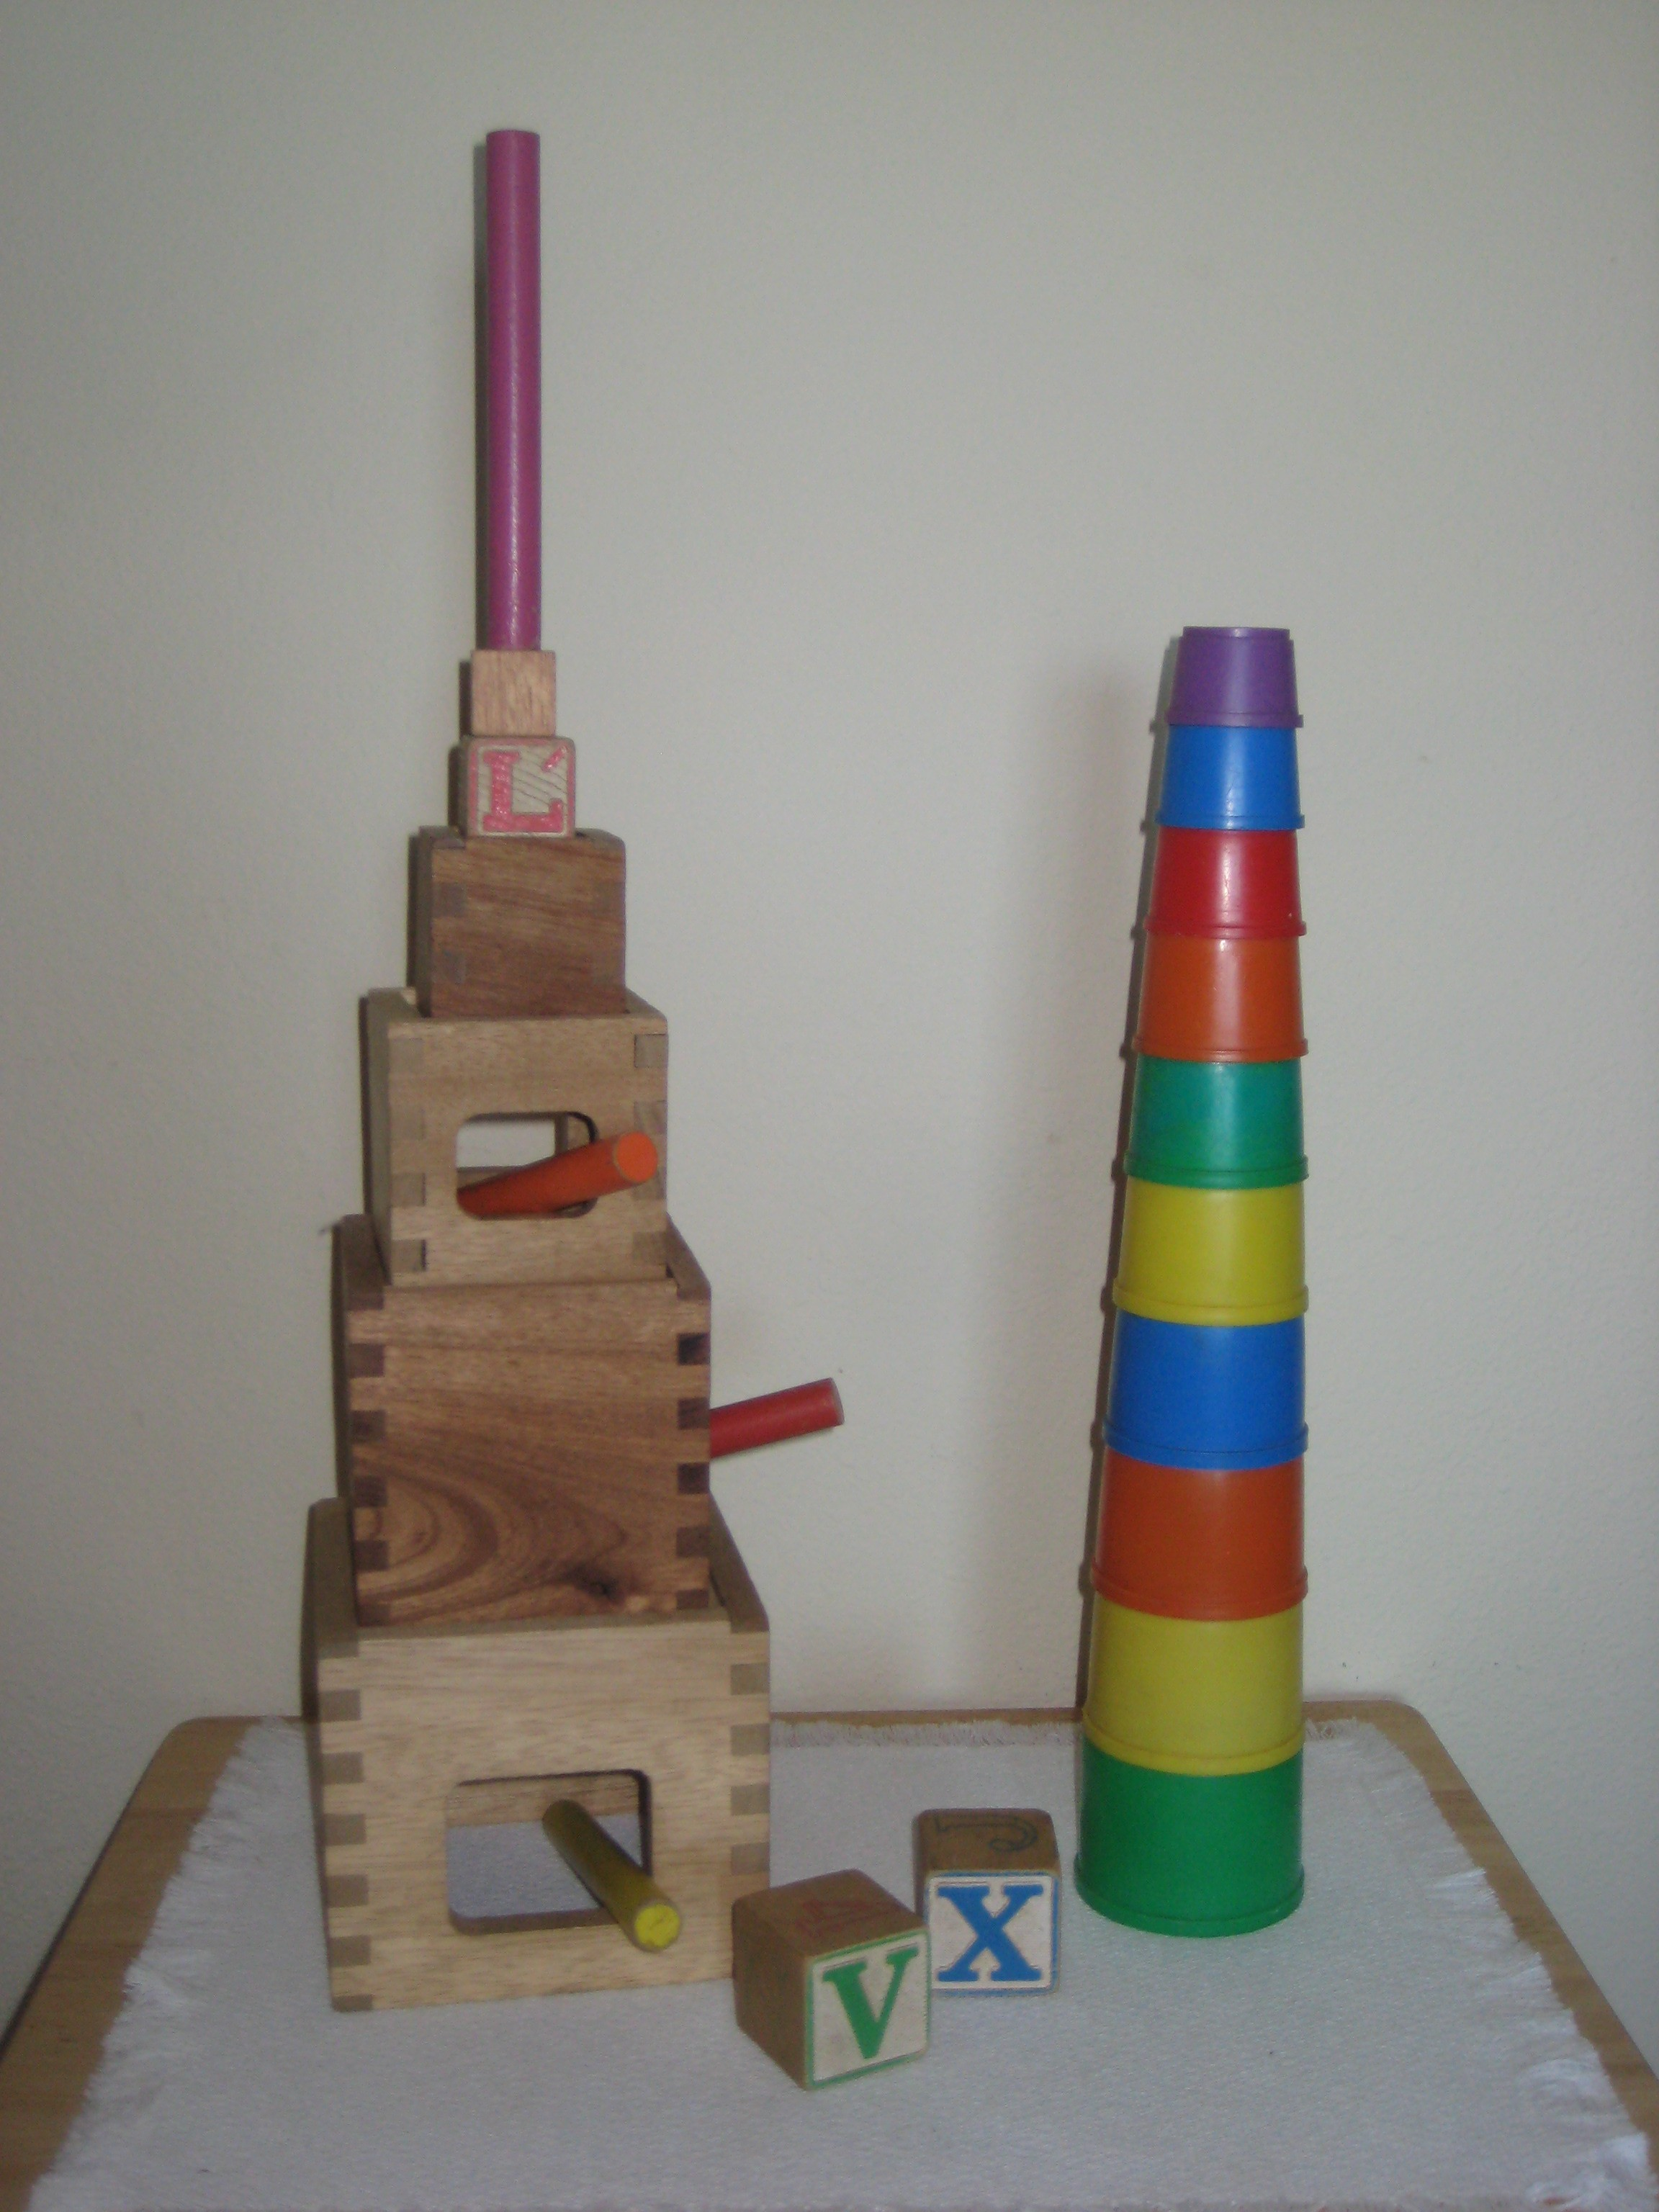 Towering Cups and Boxes